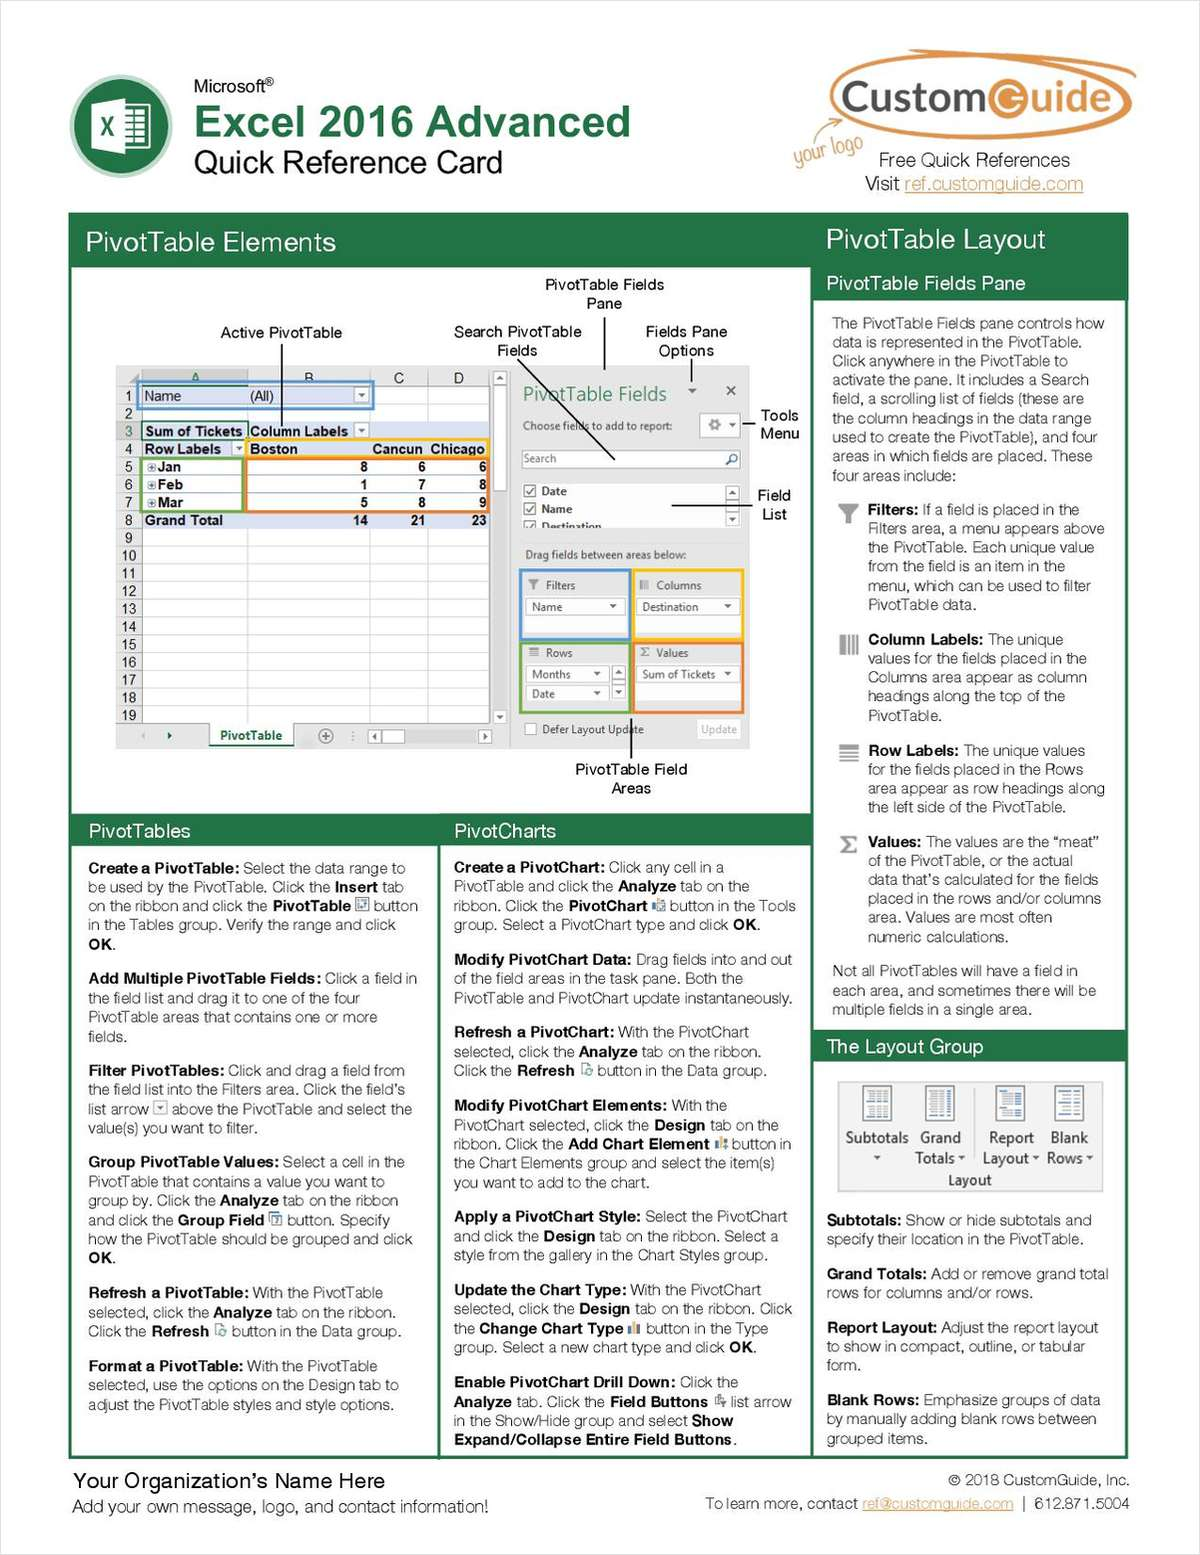 Microsoft Excel 2016 Advanced - Quick Reference Guide